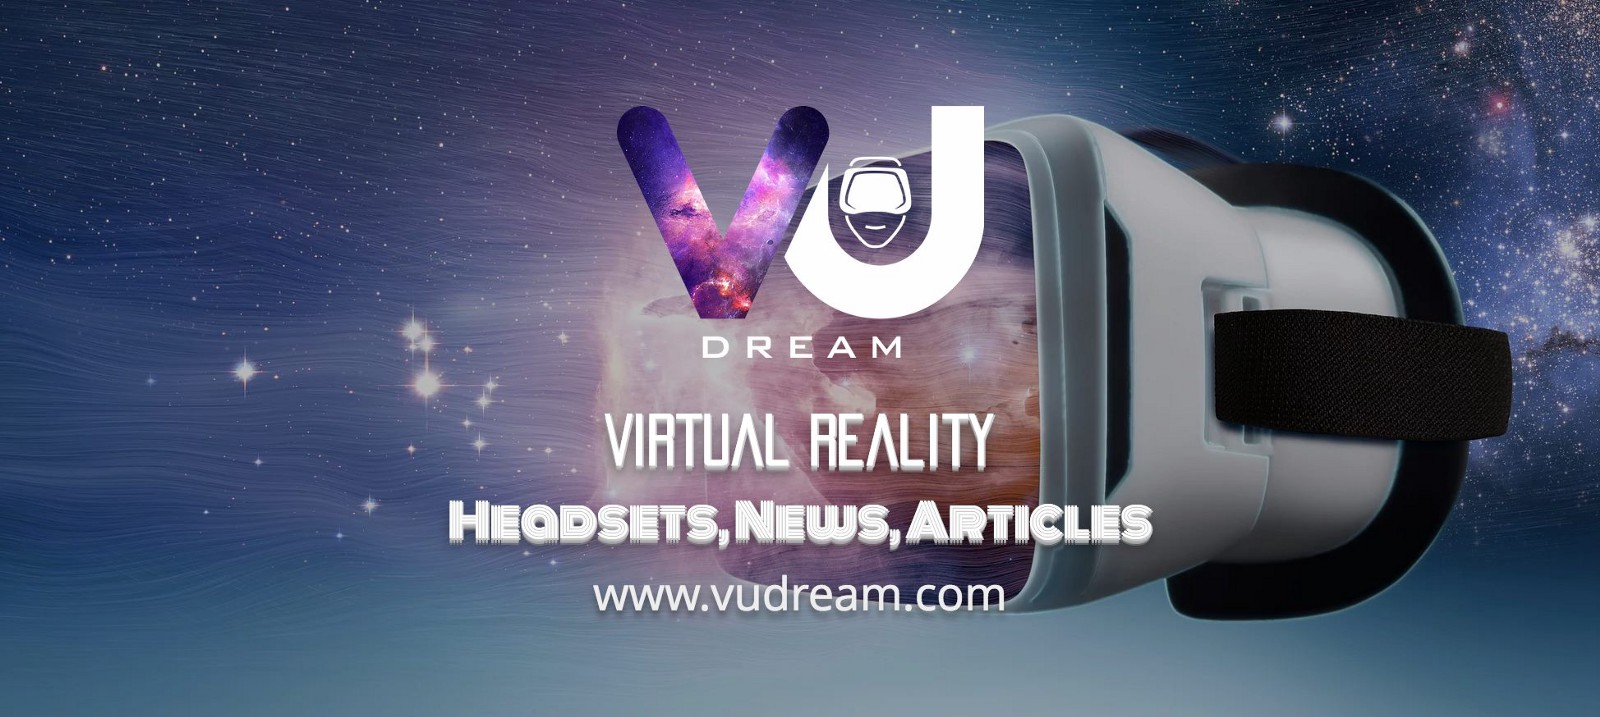 VU Dream Virtual Reality Headsets New Articles